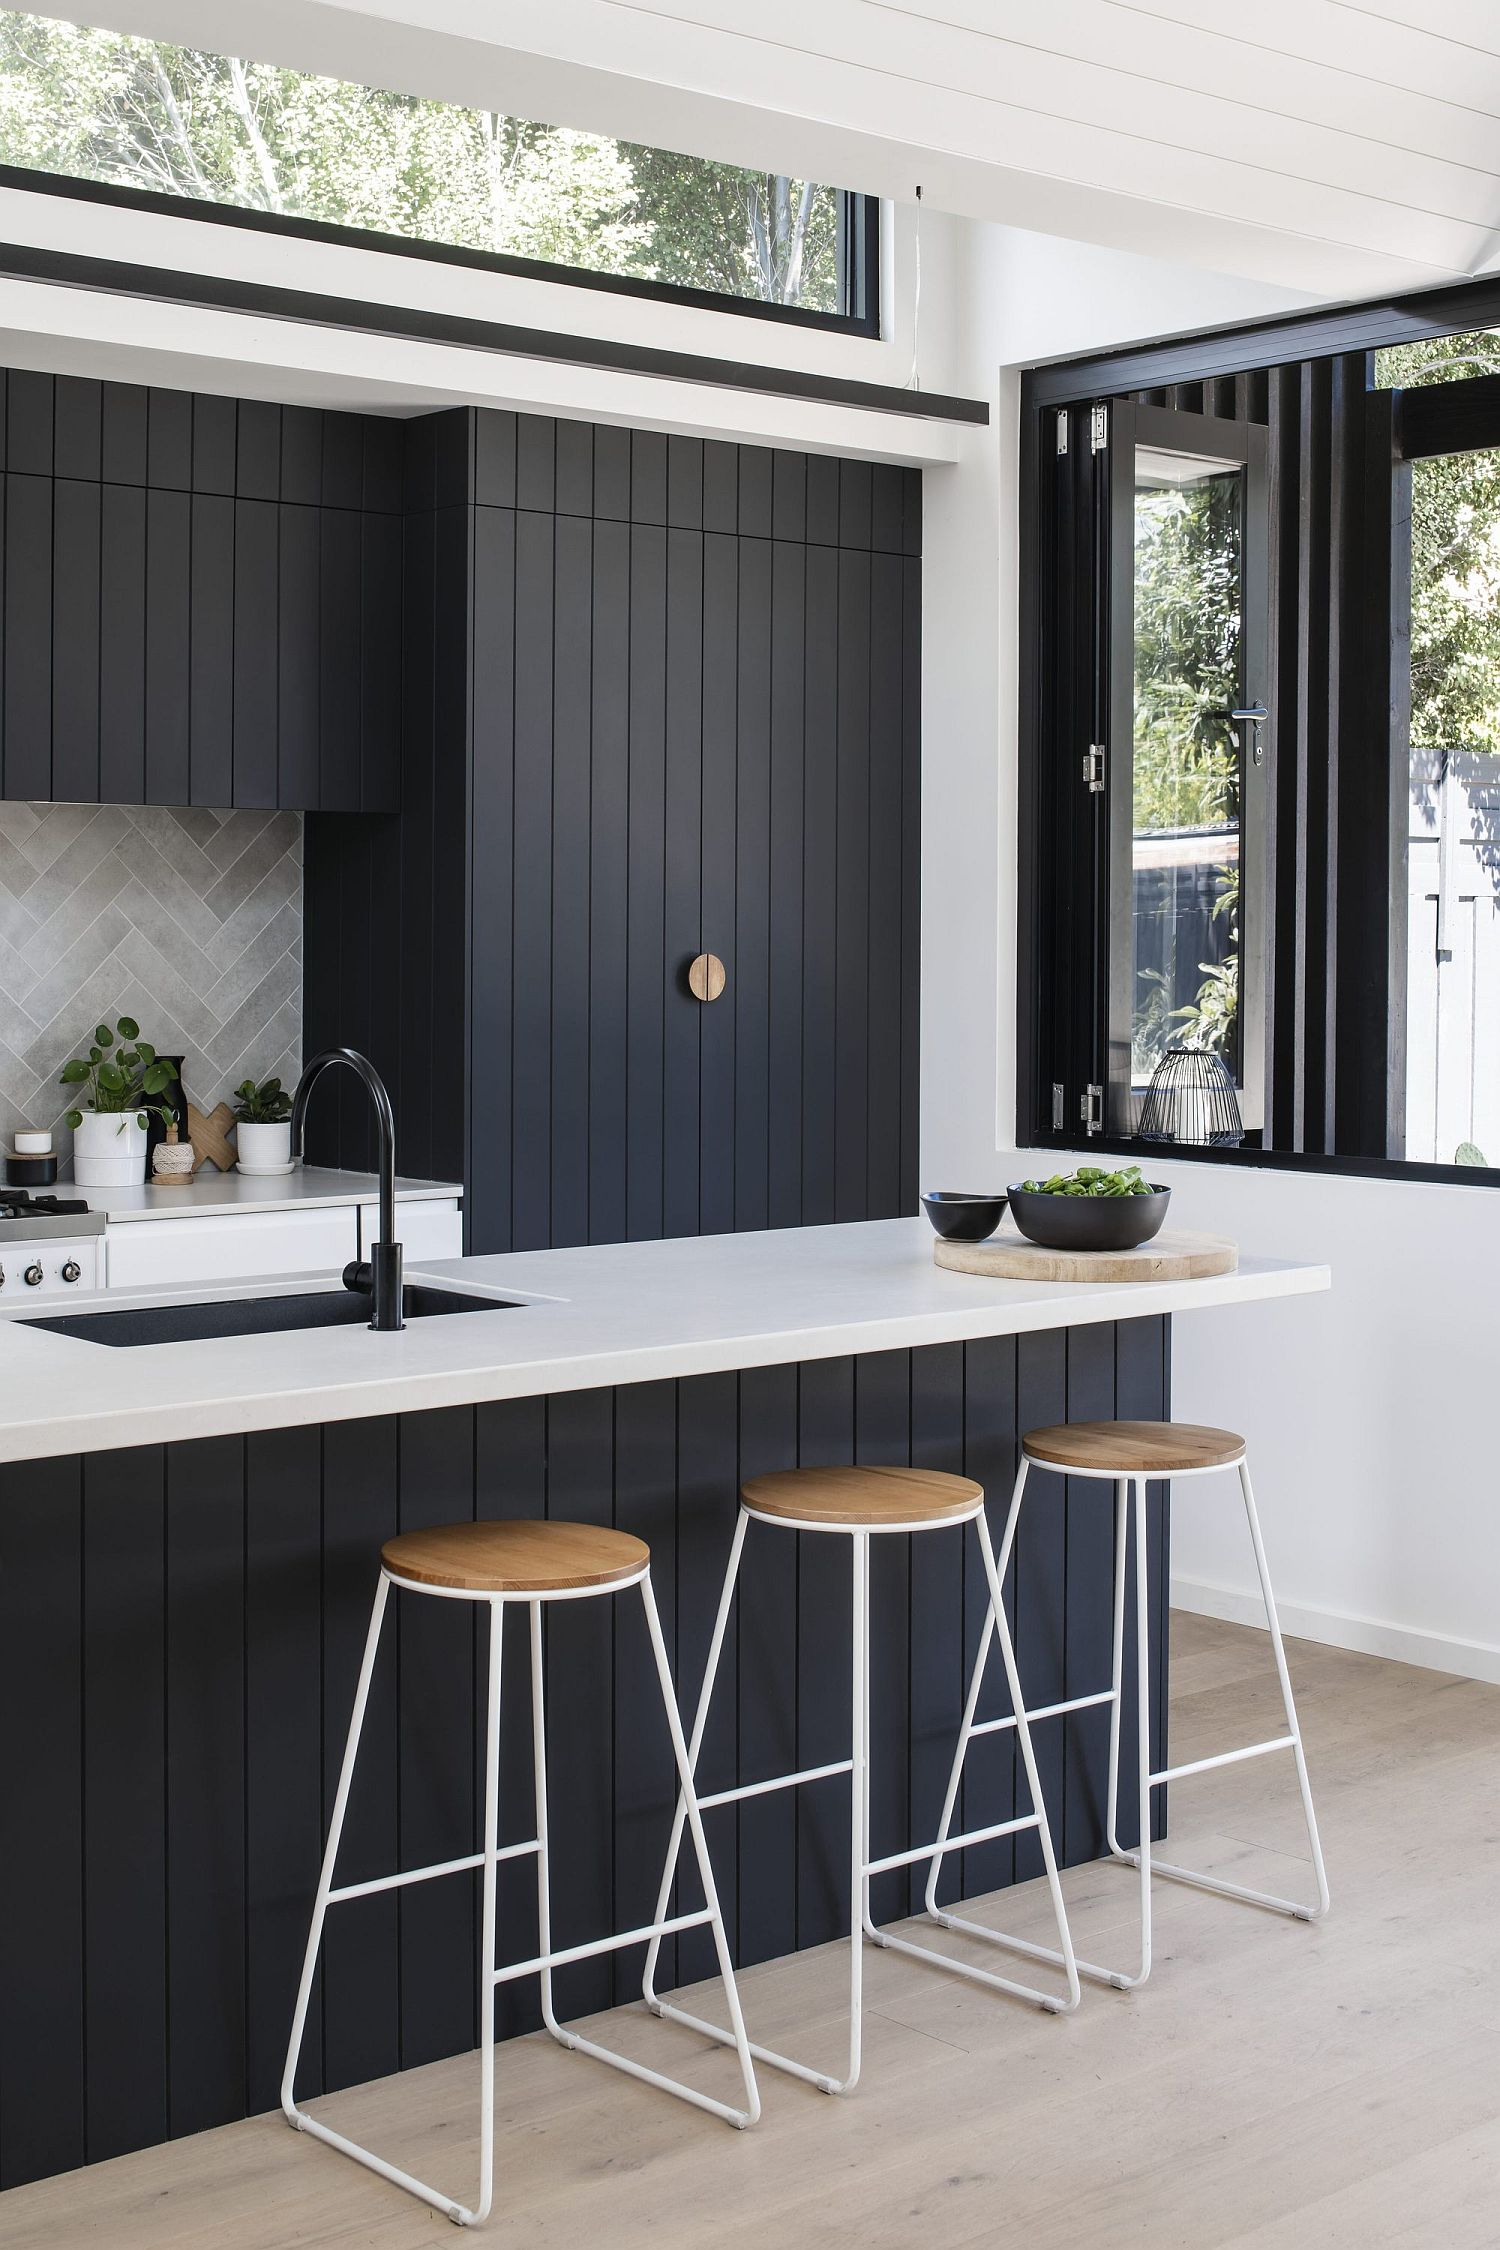 Charred and oiled cypress can be found in the modern white kitchen of the house as well